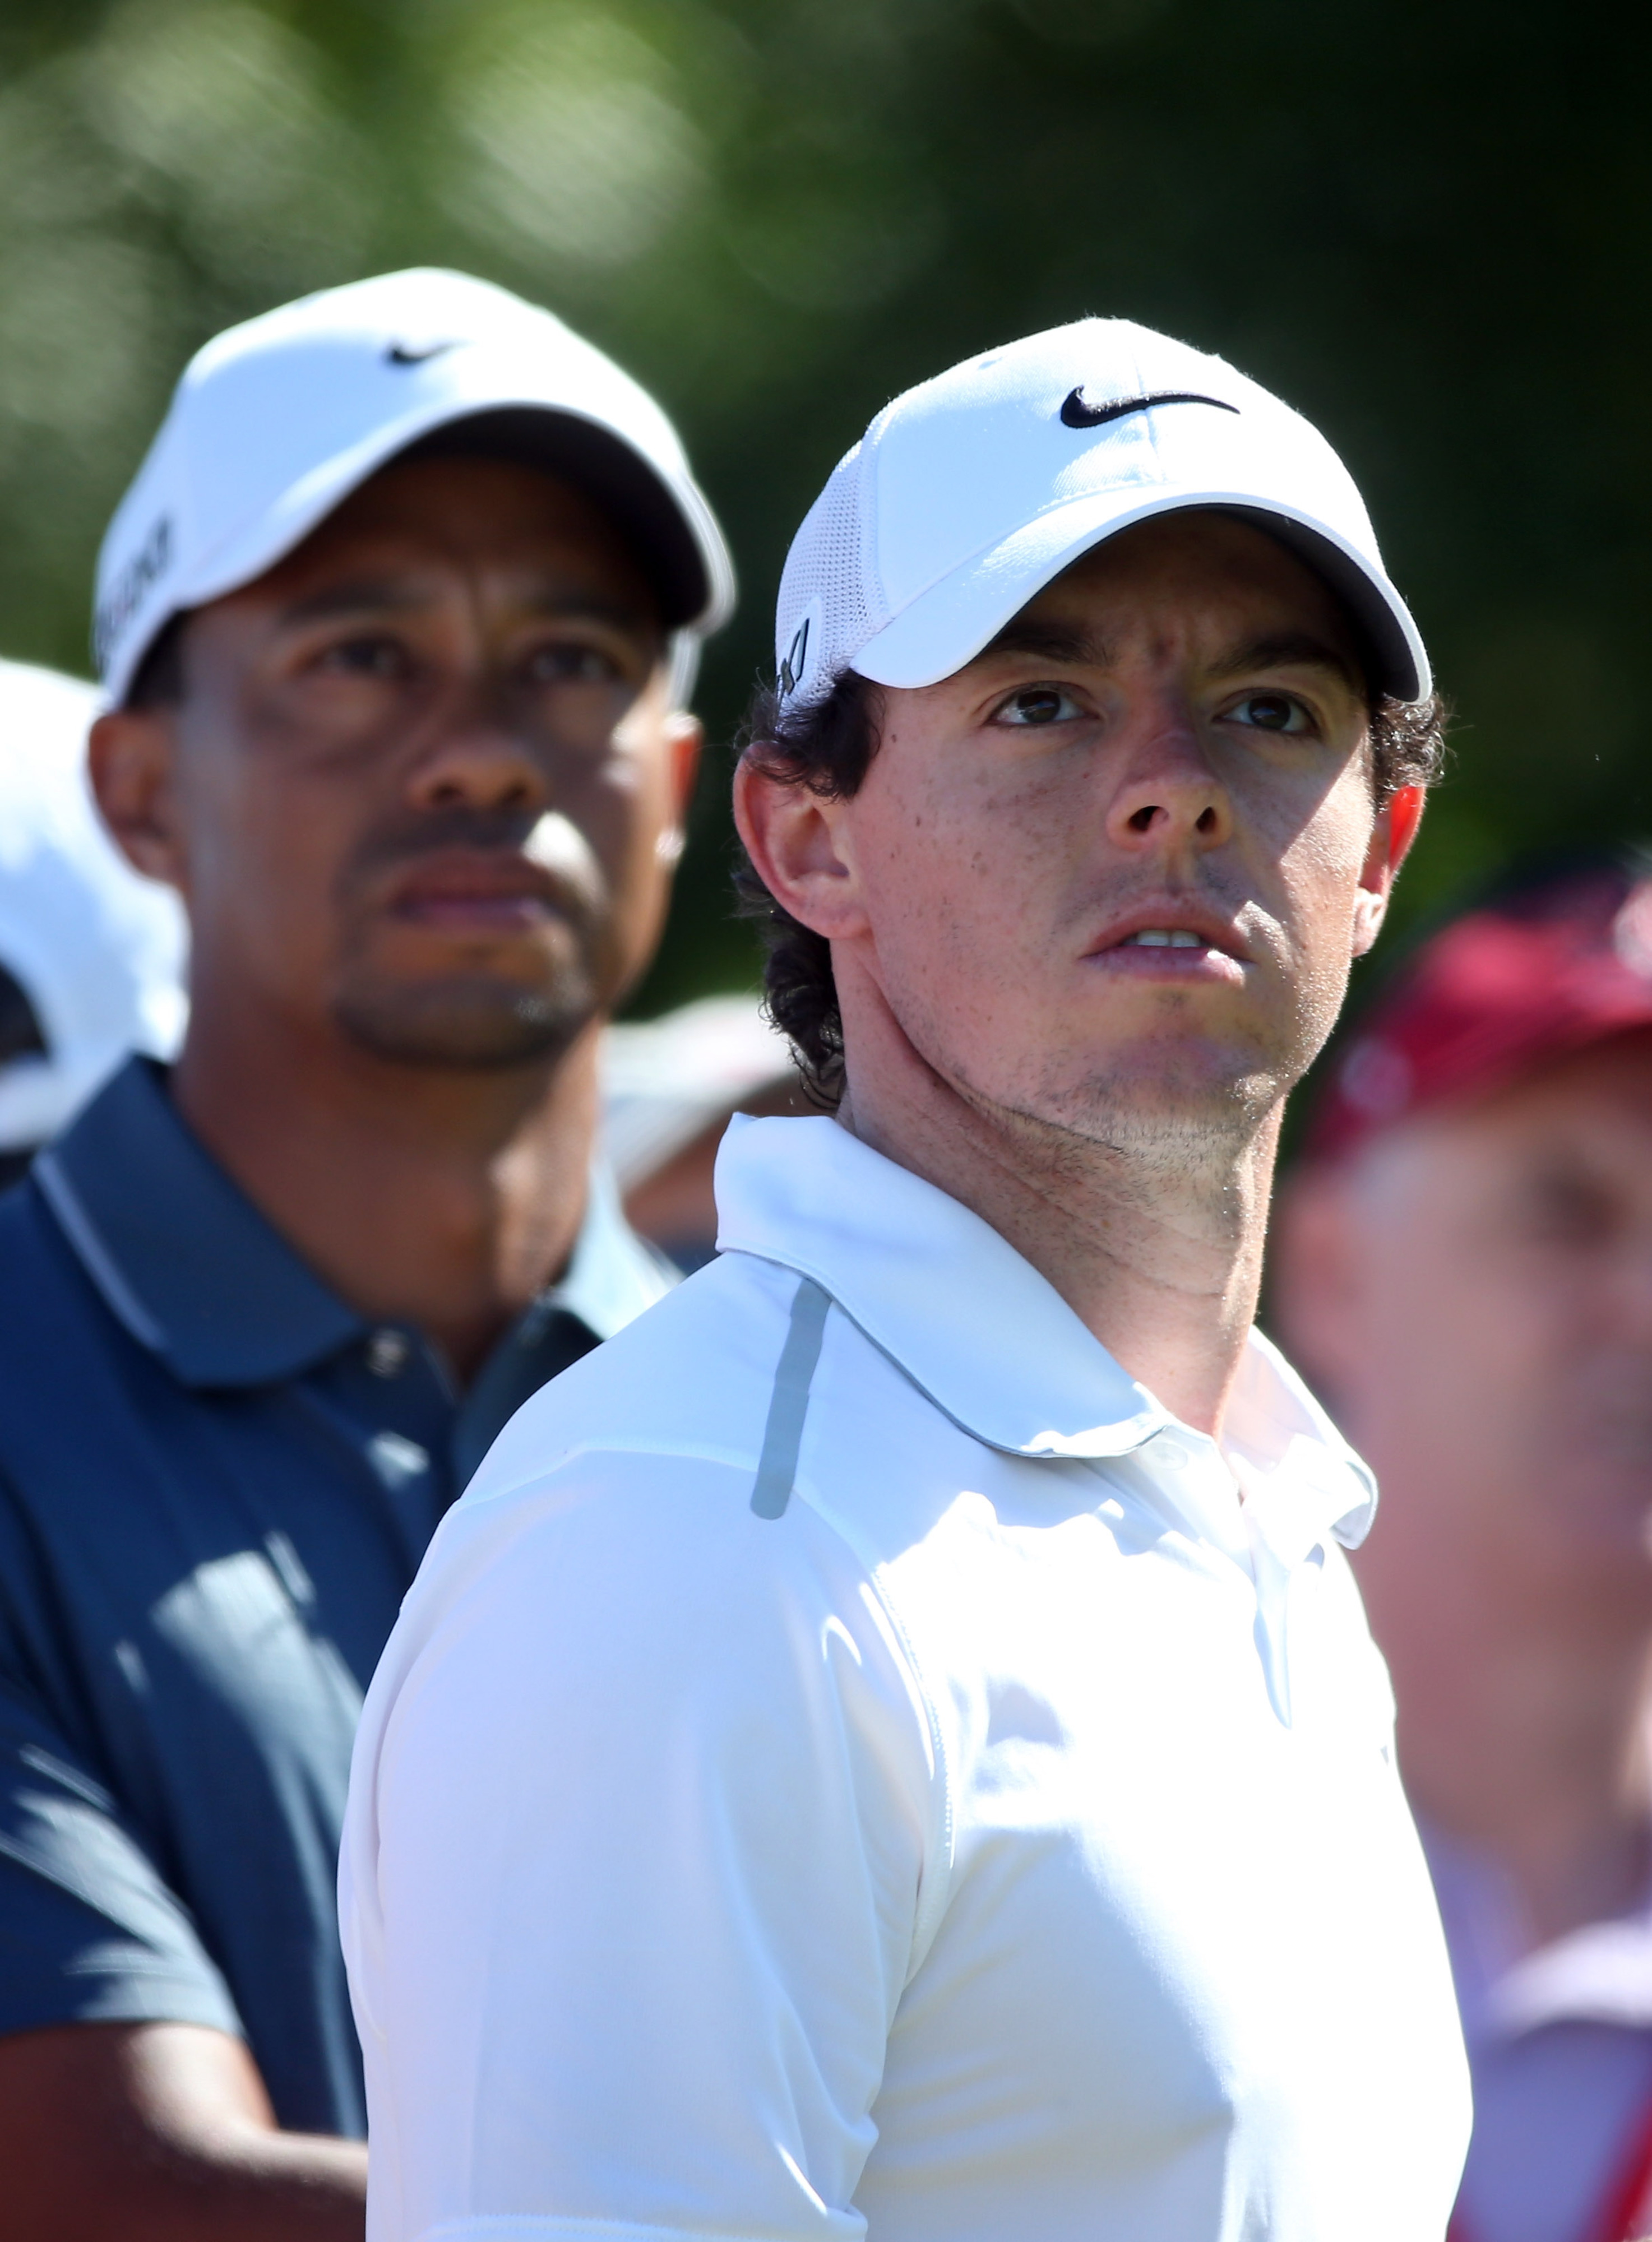 Tiger Woods leaving Rory McIlroy in his dust